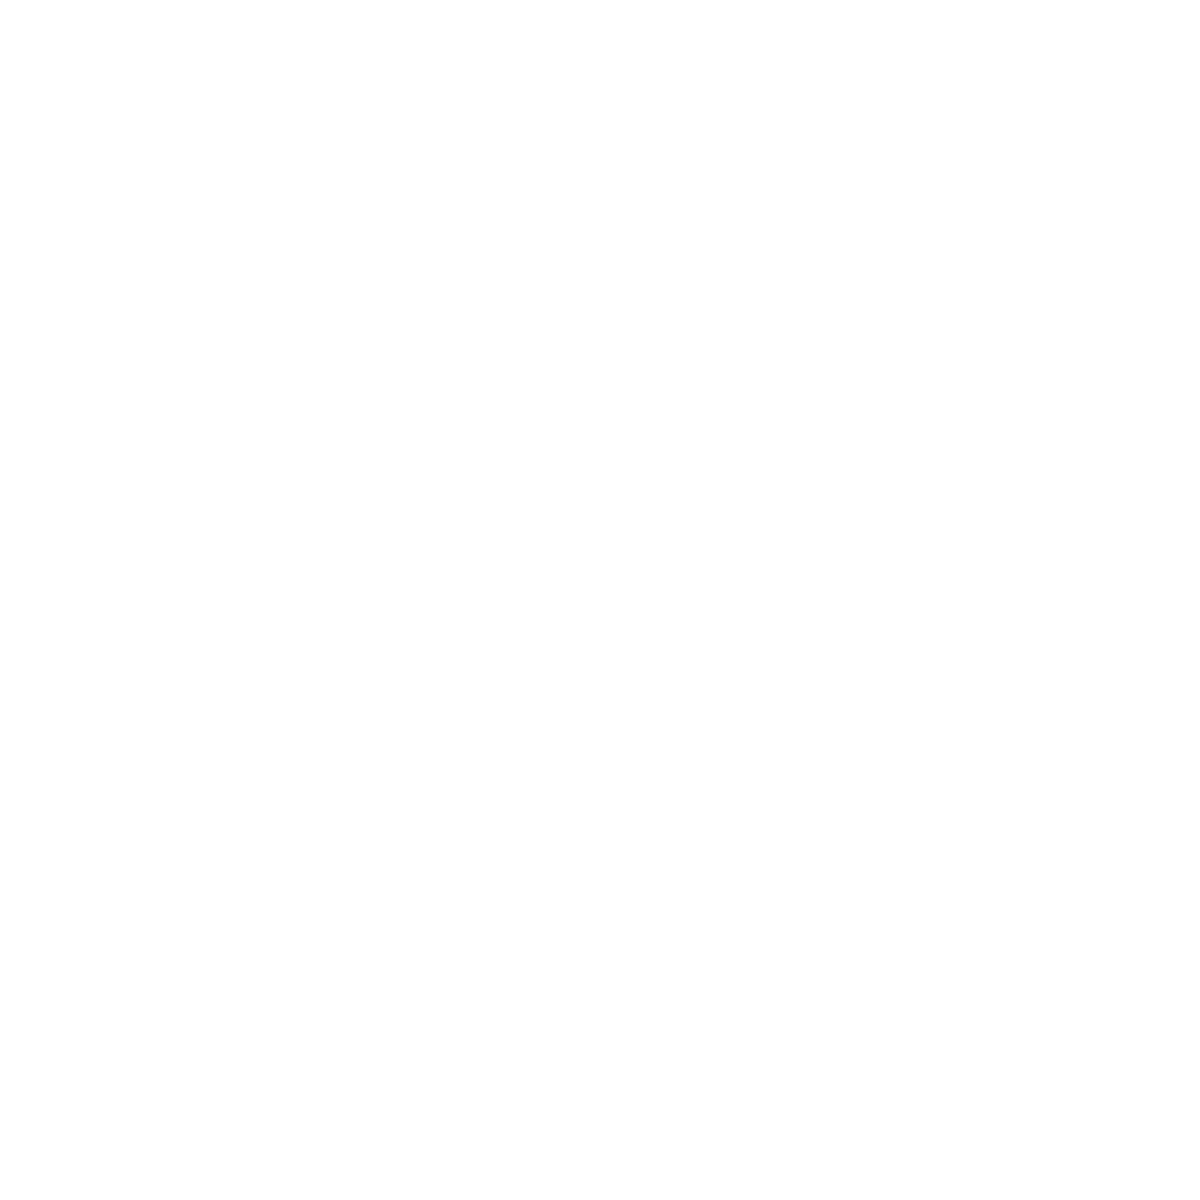 snow mobile icon